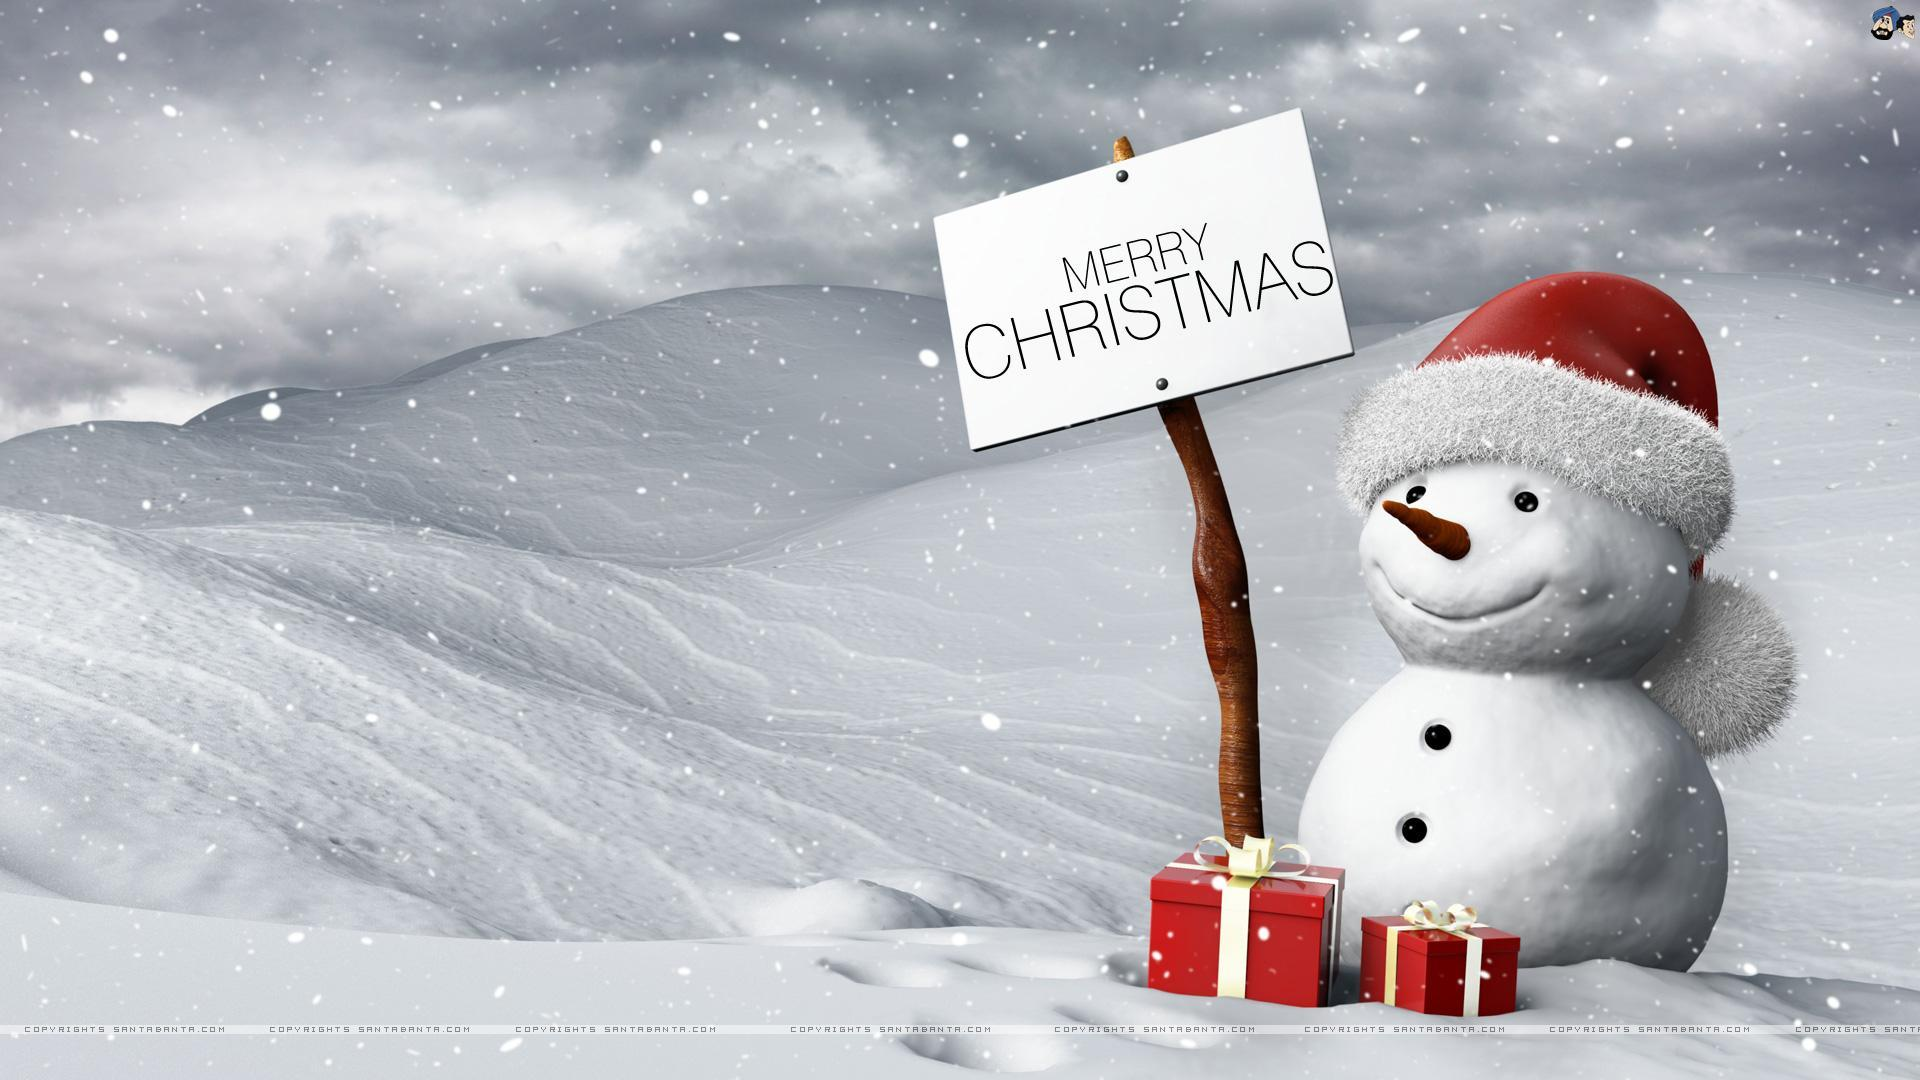 Merry Christmas Timeline wallpapers 112112